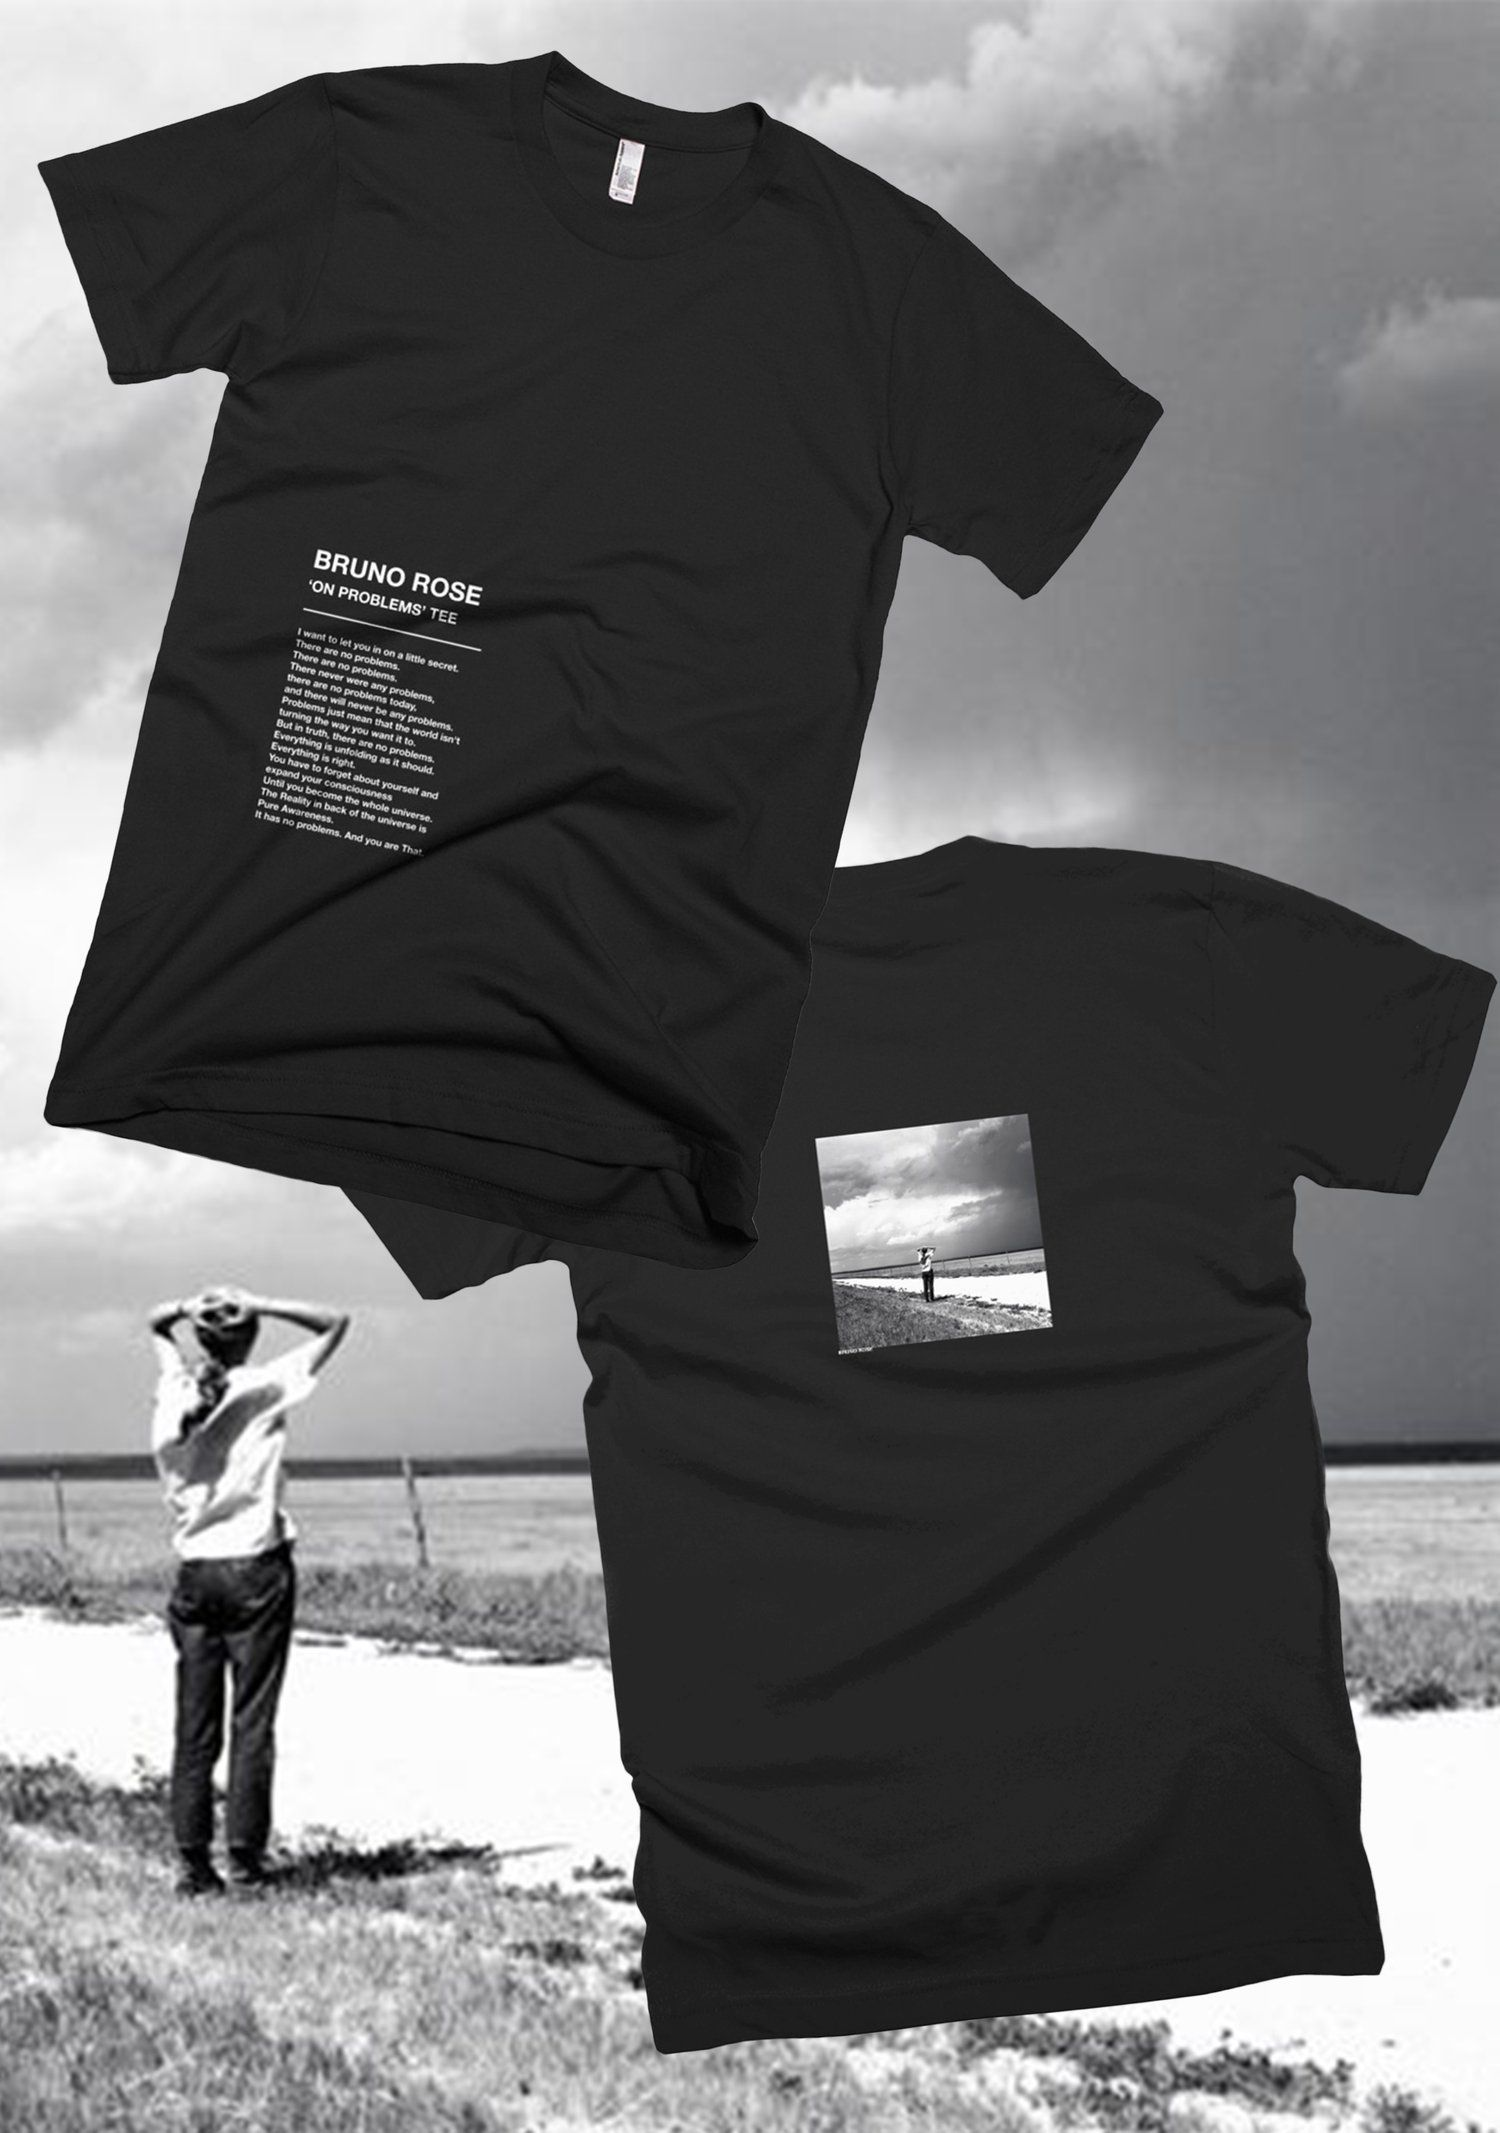 c29bcb3d6d6746 Image of 'ON PROBLEMS' FRONT/BACK TEE Bruno Apparel #streetwear #tshirts